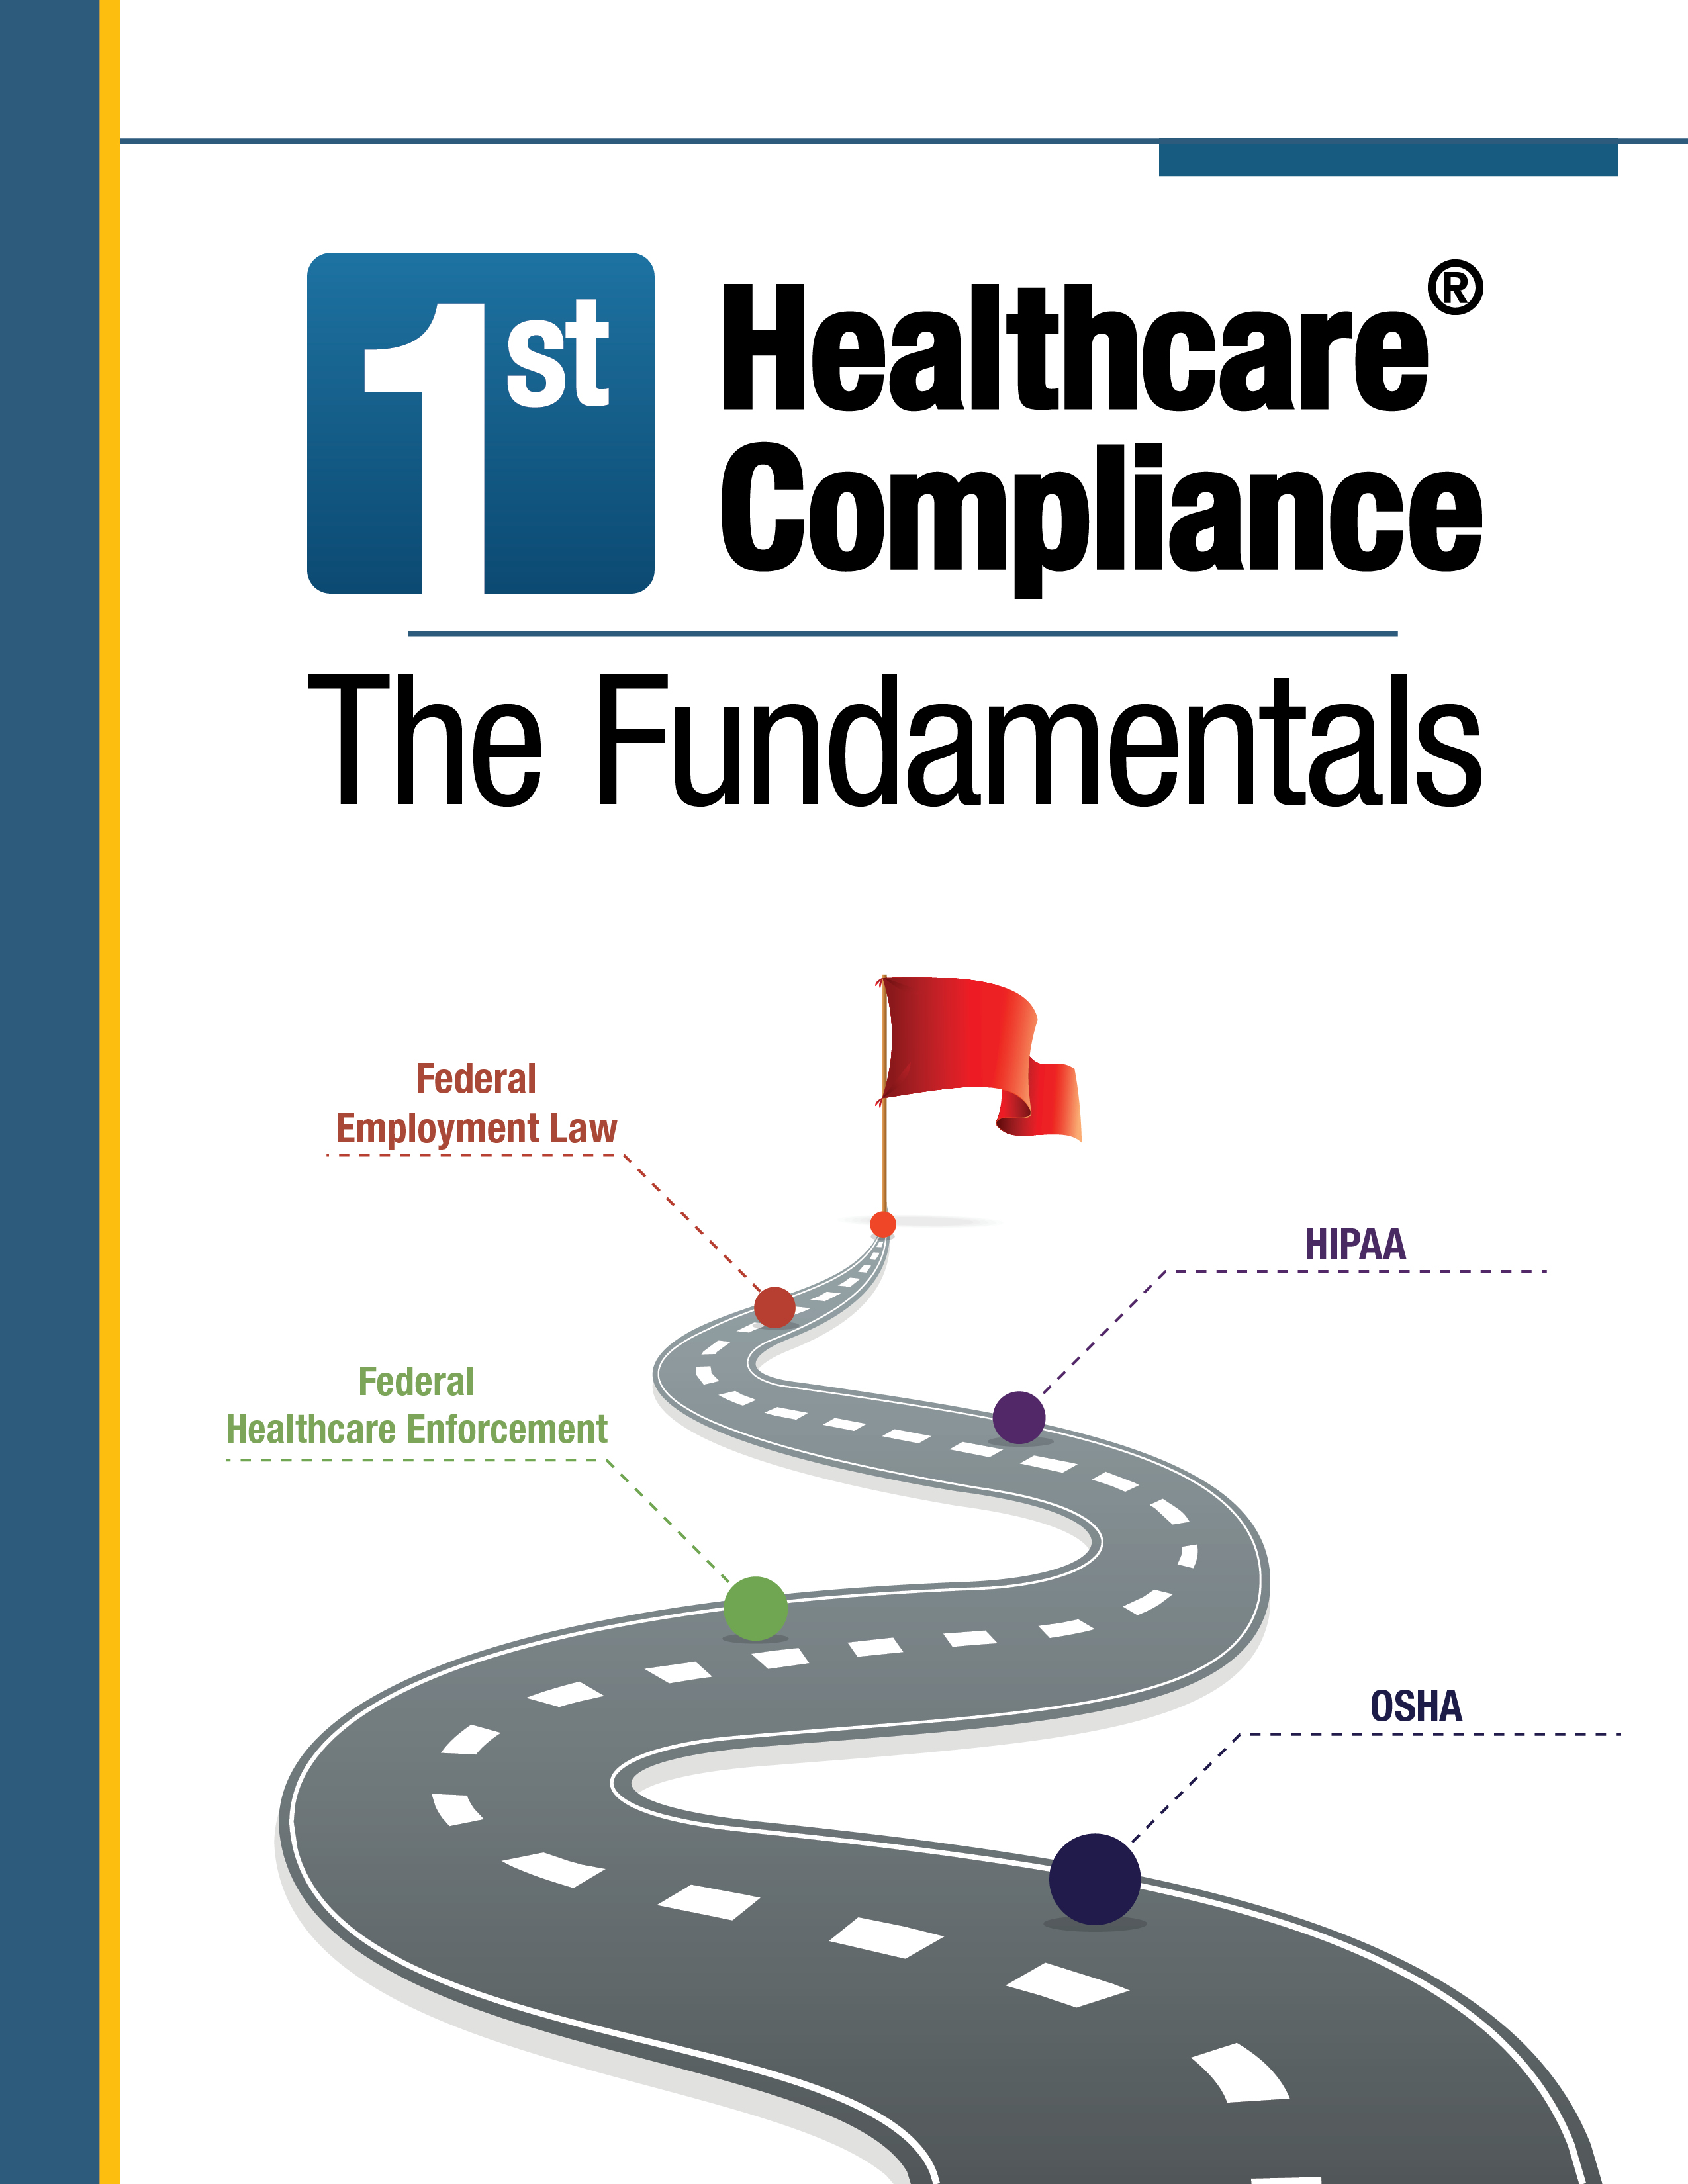 Compliance New York Premiere: First Healthcare Compliance To Demonstrate New Compliance